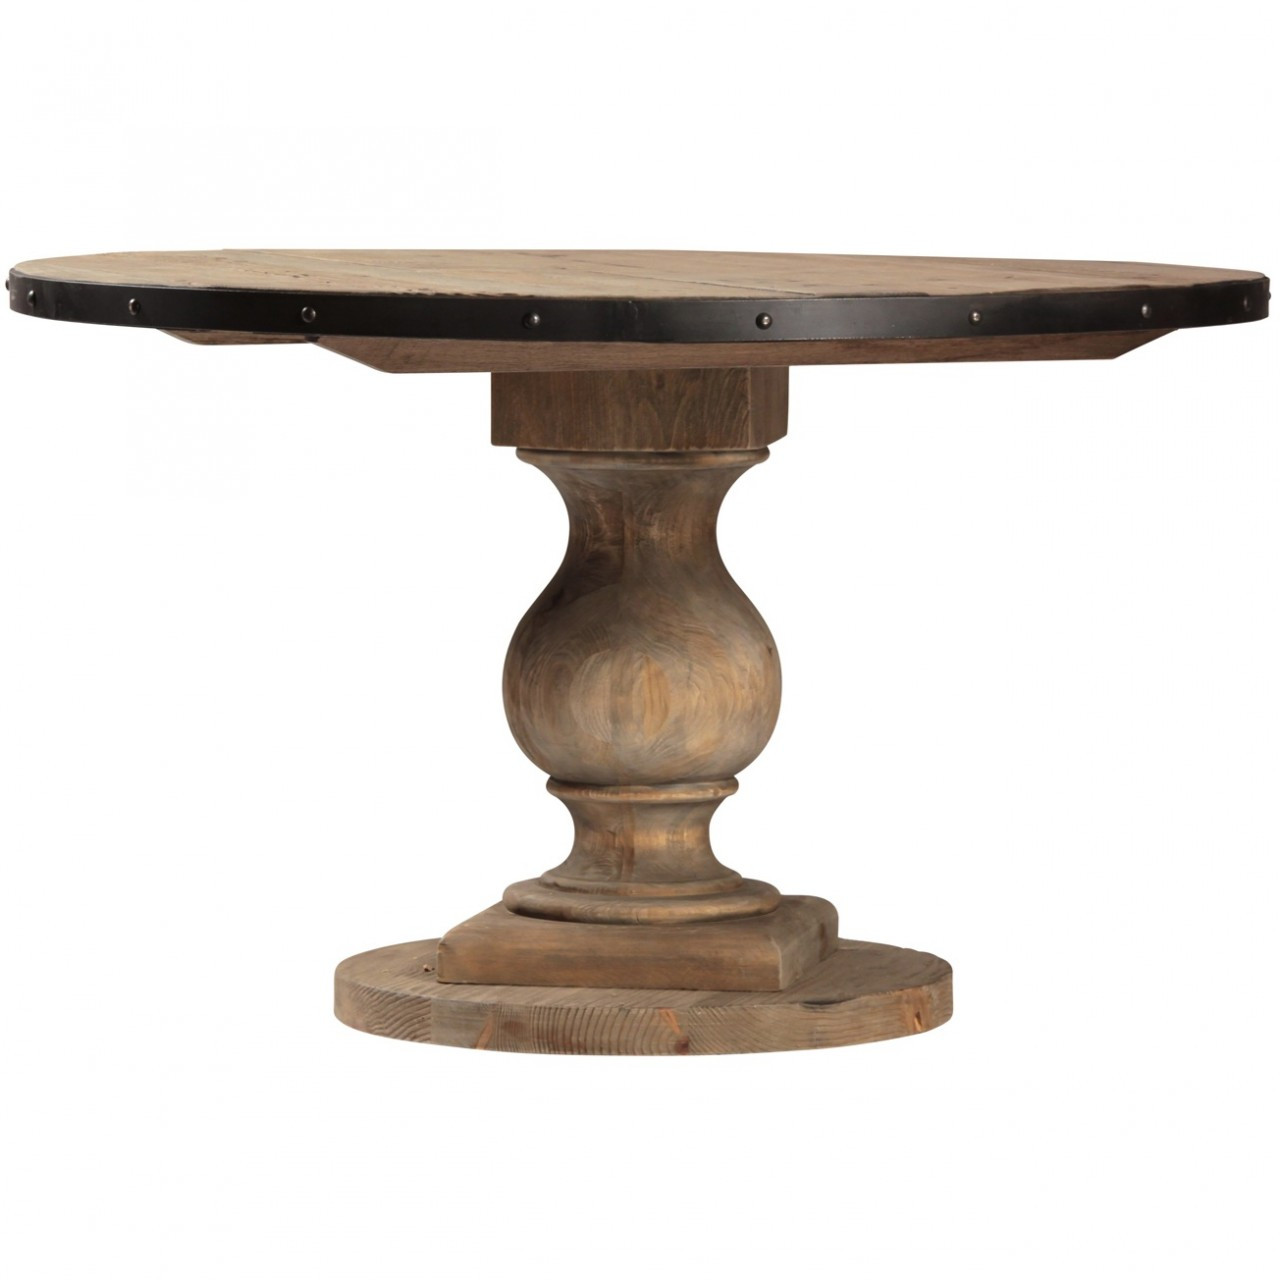 round pedestal dining room tables | Farmhouse Round Pedestal Dining Room Table 51"